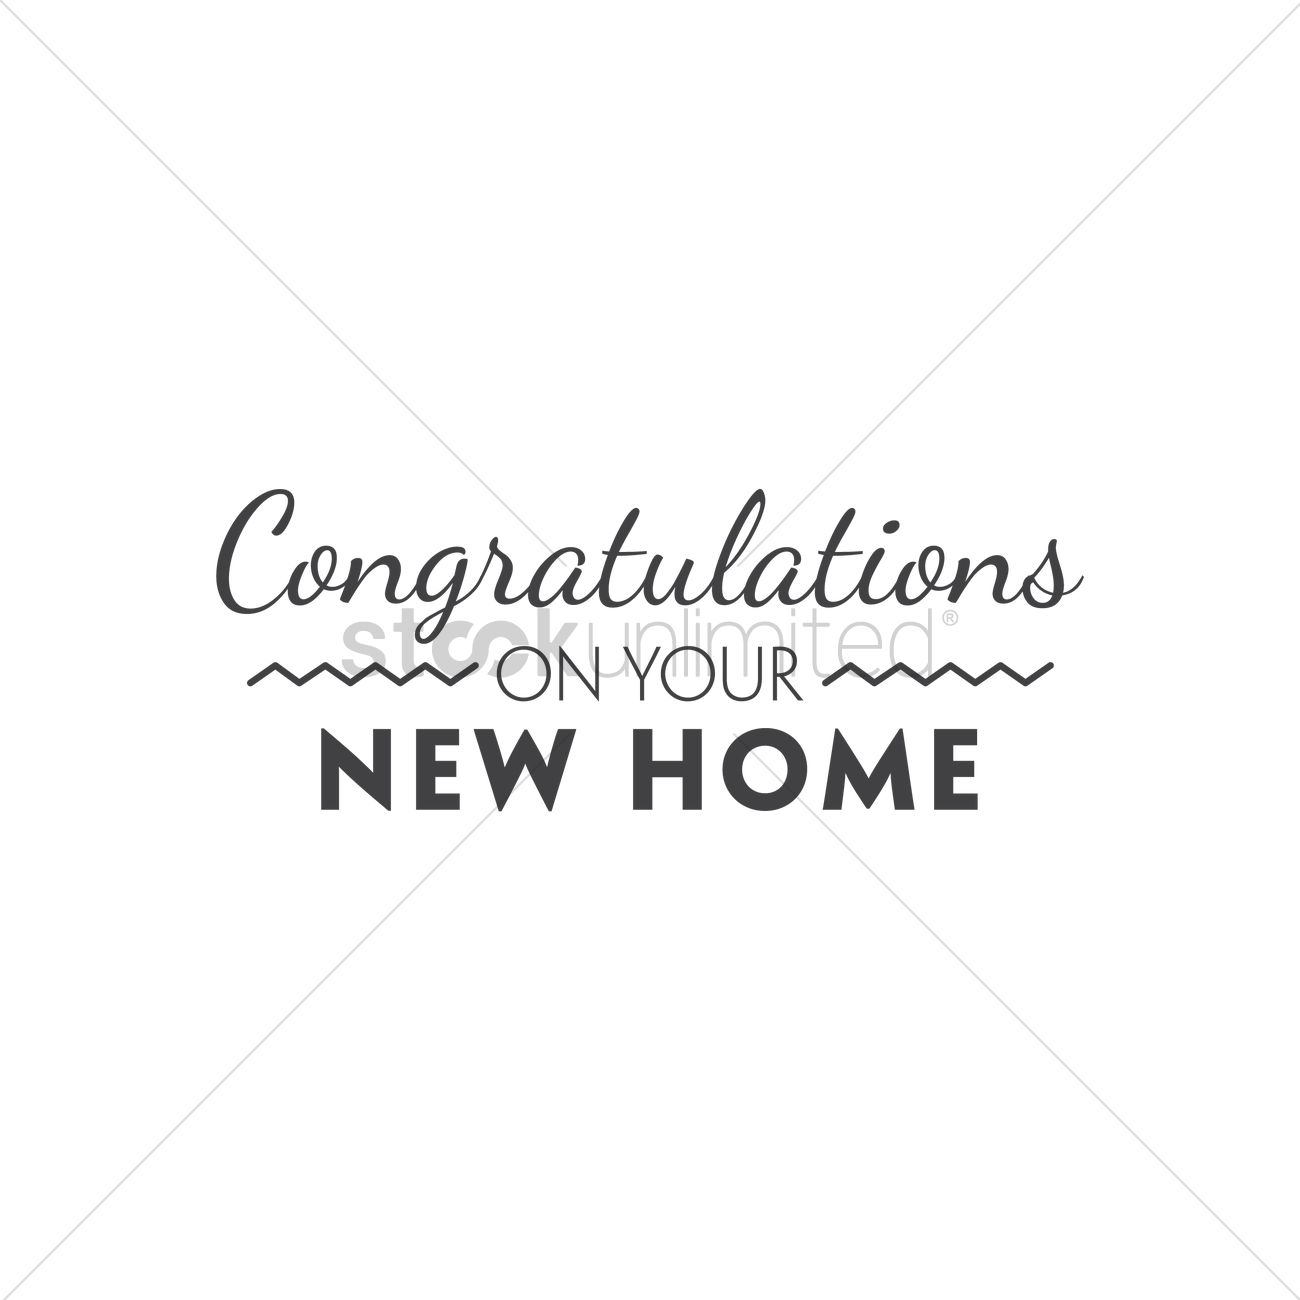 Congratulations On Your New Home Vector Image